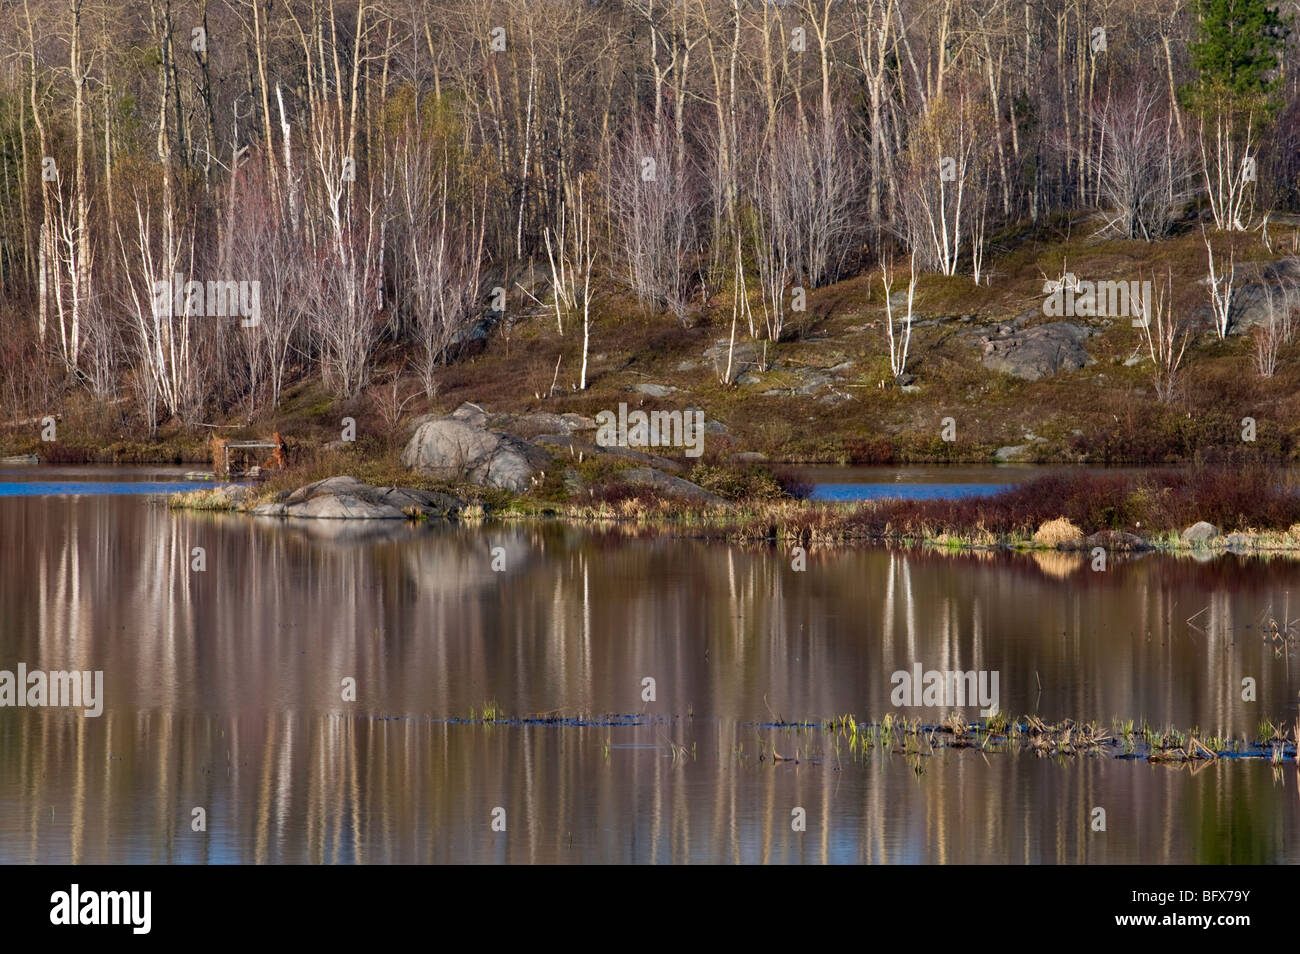 Birch tree reflections in beaverpond in early spring, Greater Sudbury, Ontario, Canada - Stock Image